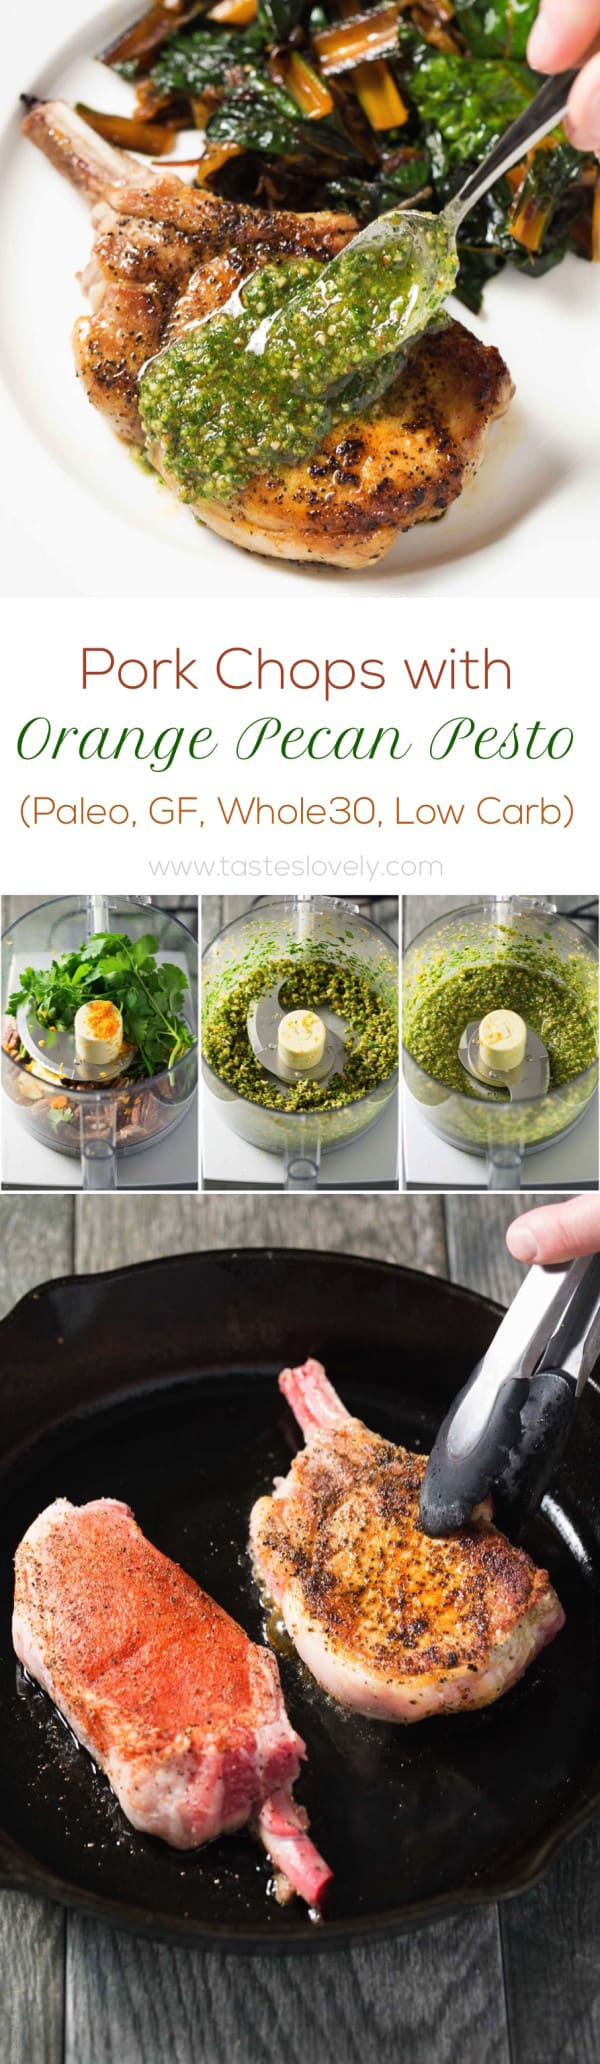 Pork Chops with Orange Pecan Pesto (Paleo, Gluten Free, Whole30, Low Carb)